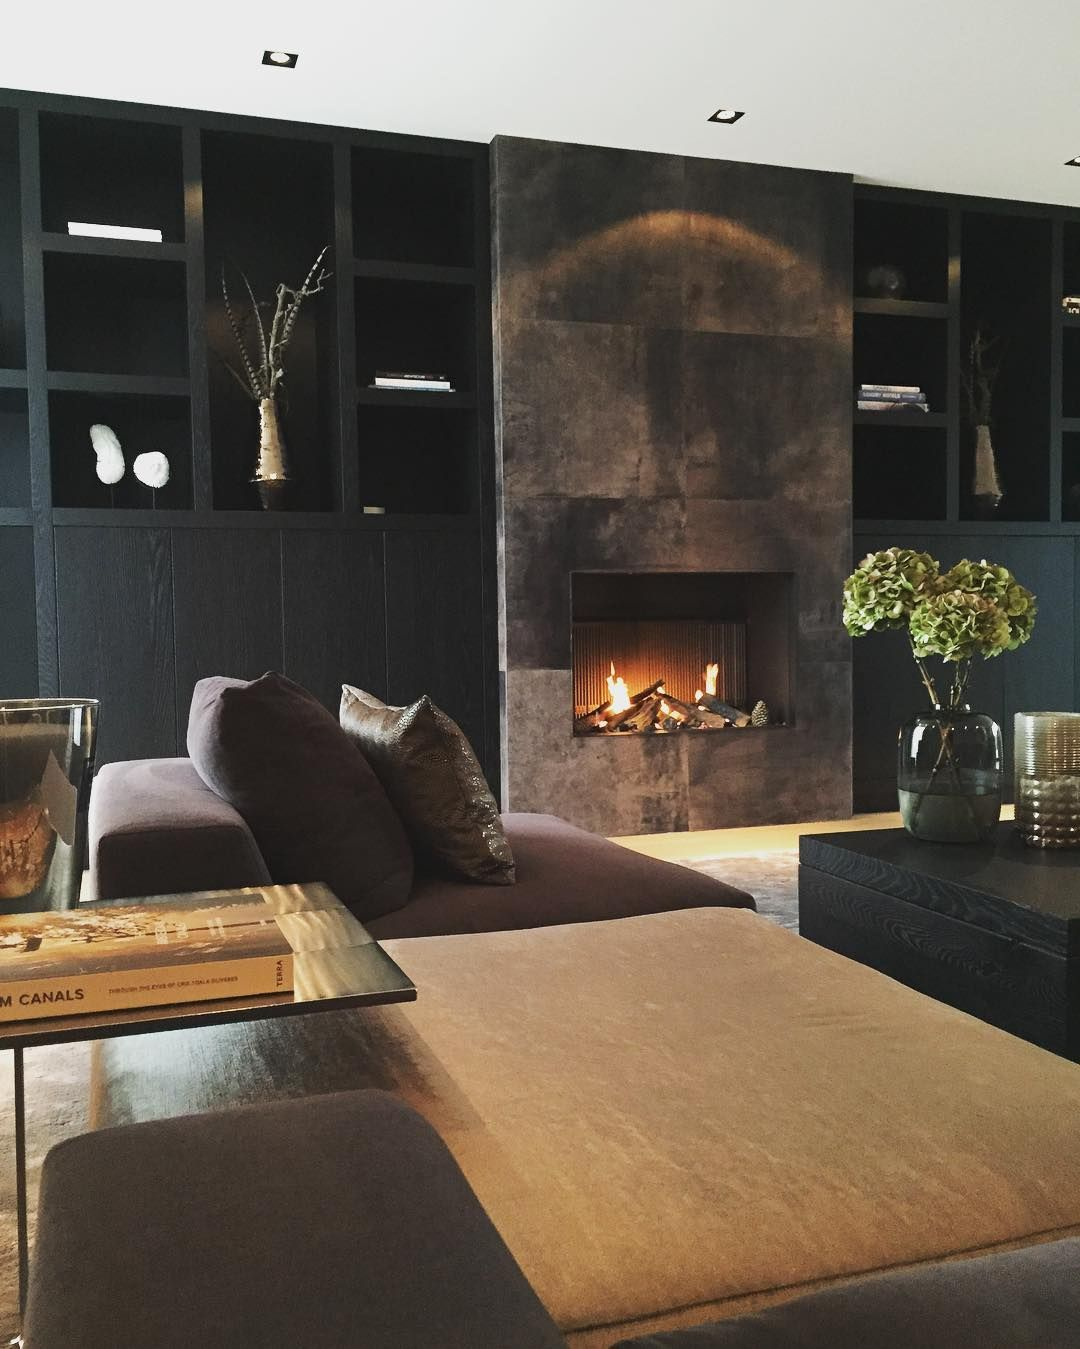 cozy living room with fireplace. 25 Great Tips For An Extra Stylish And Cozy Living Room With Fireplace